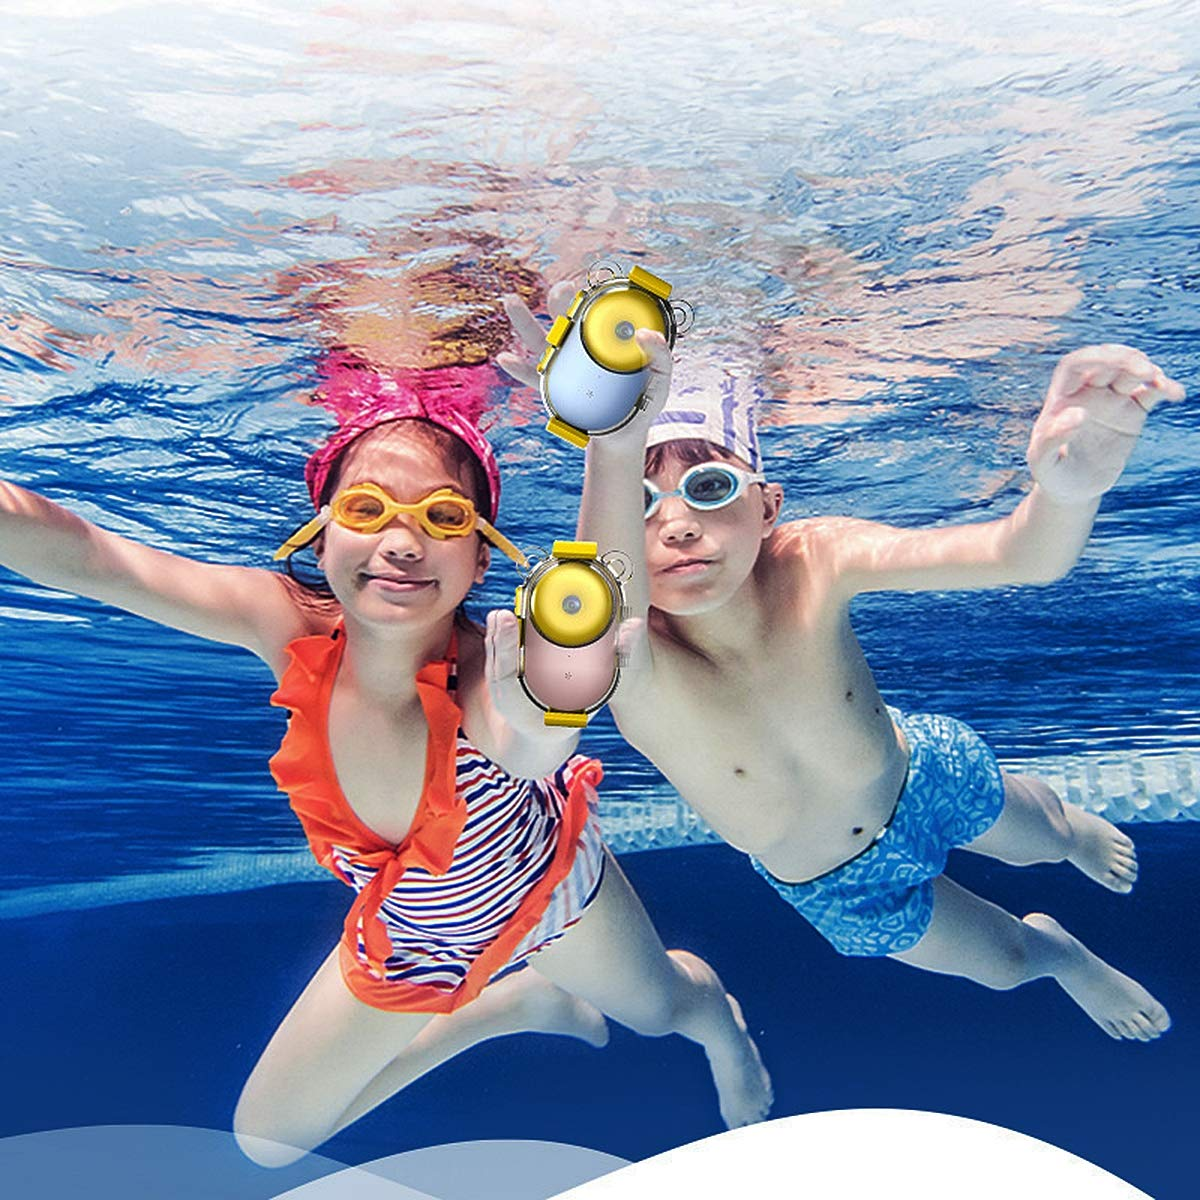 Aegilmc Child Waterproof WiFi Digital Camera, SLR Motion Double Lens Diving Camera, 800MP 1080P Kids Action Camera Sports Camcorder,Pink by Aegilmc (Image #3)